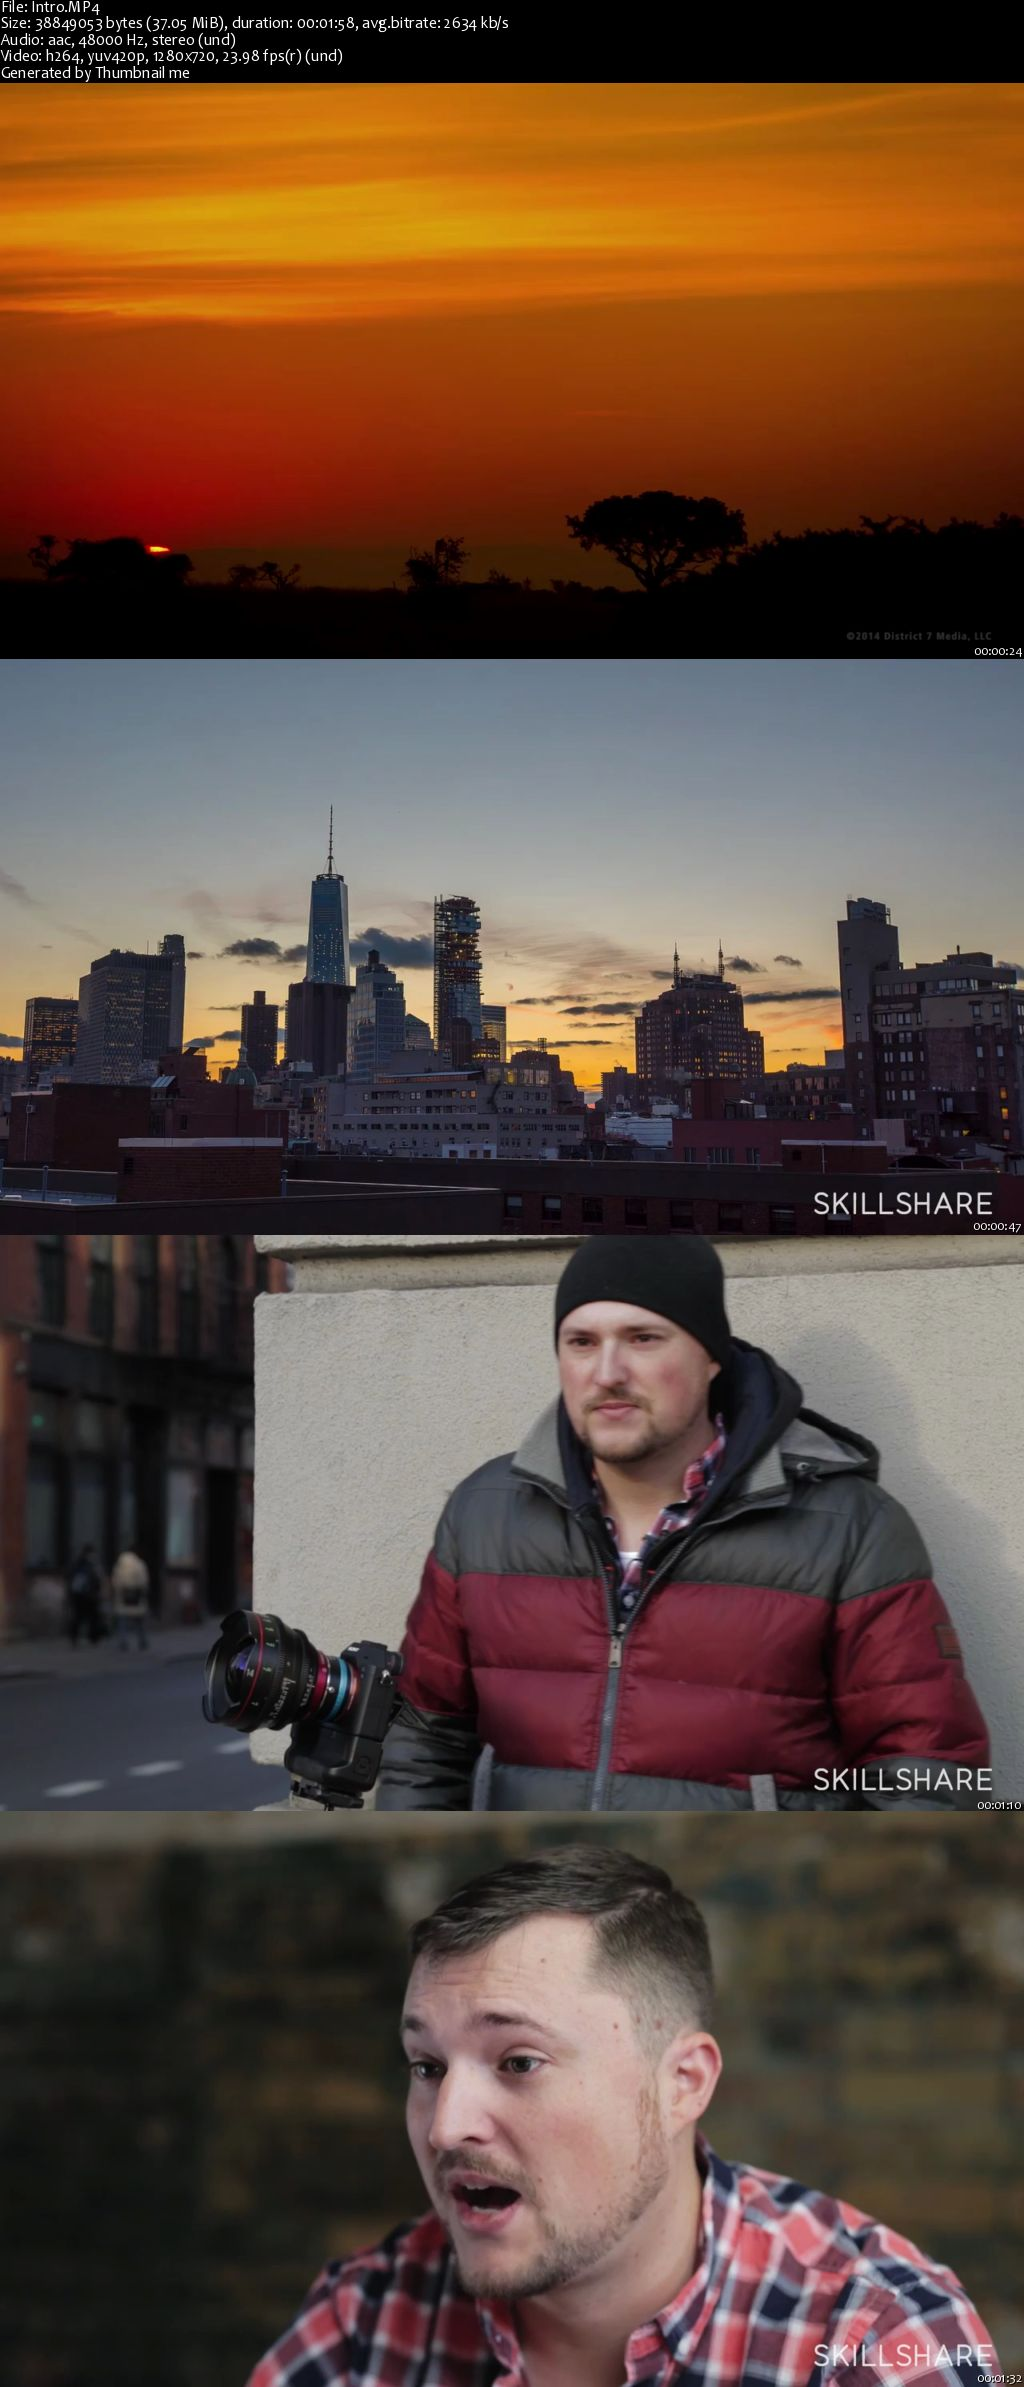 Timelapse Video: Capture Your City, Unlock a Story